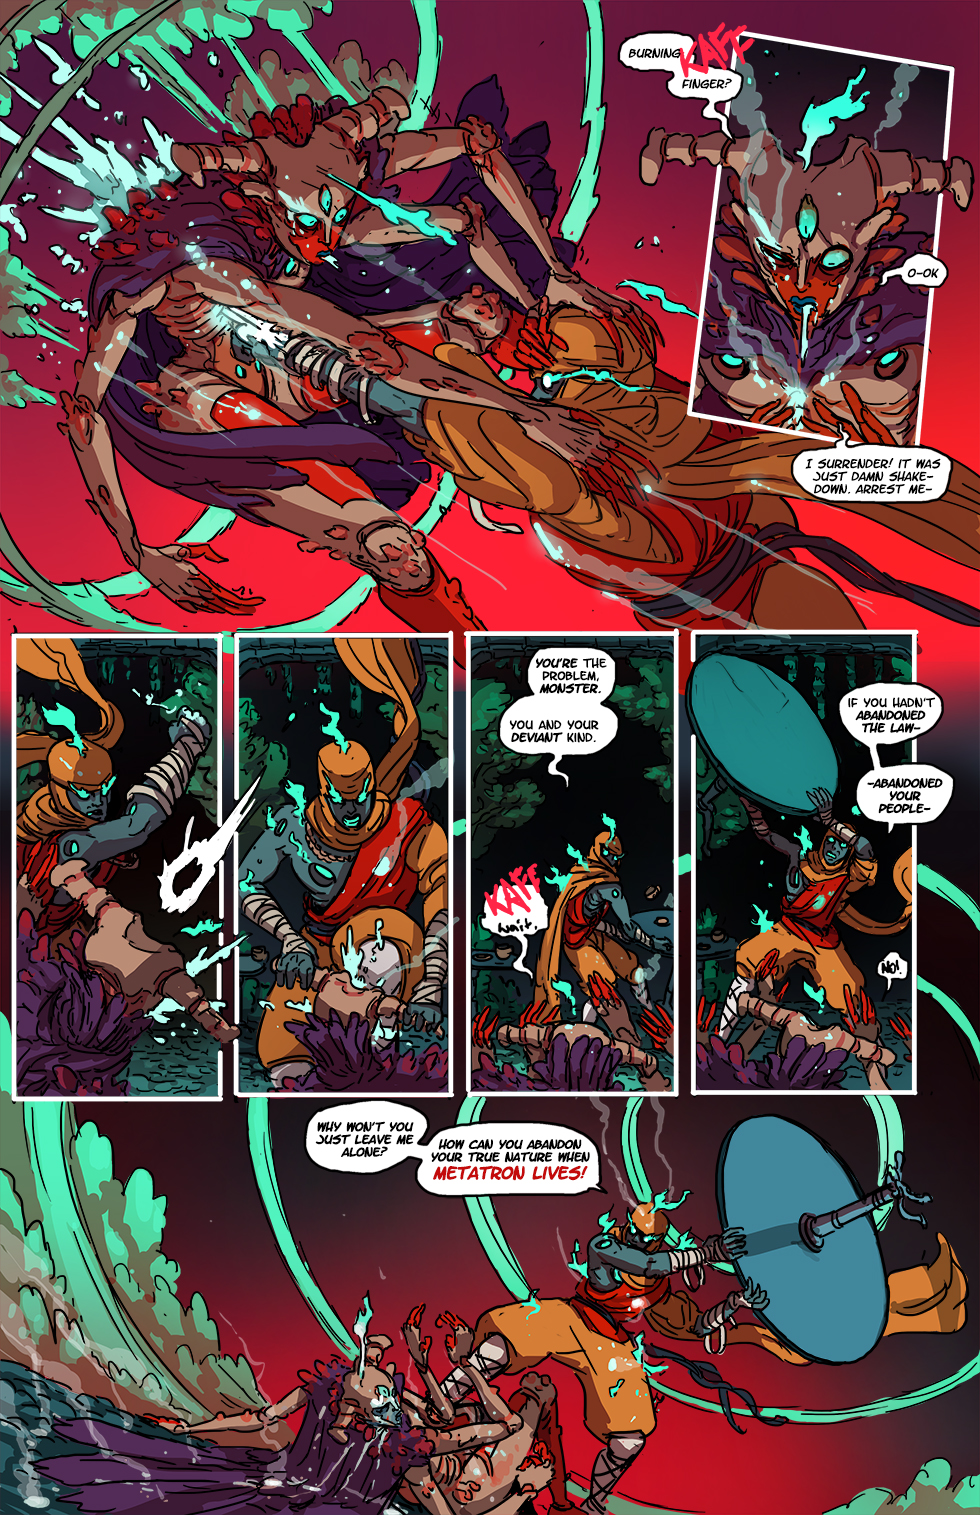 The poor petal knight being beat up here is 33 Judicious Rains Sear the Unrepentant. I thought I might mention that here just in case, you know, something bad happens to her/them/it